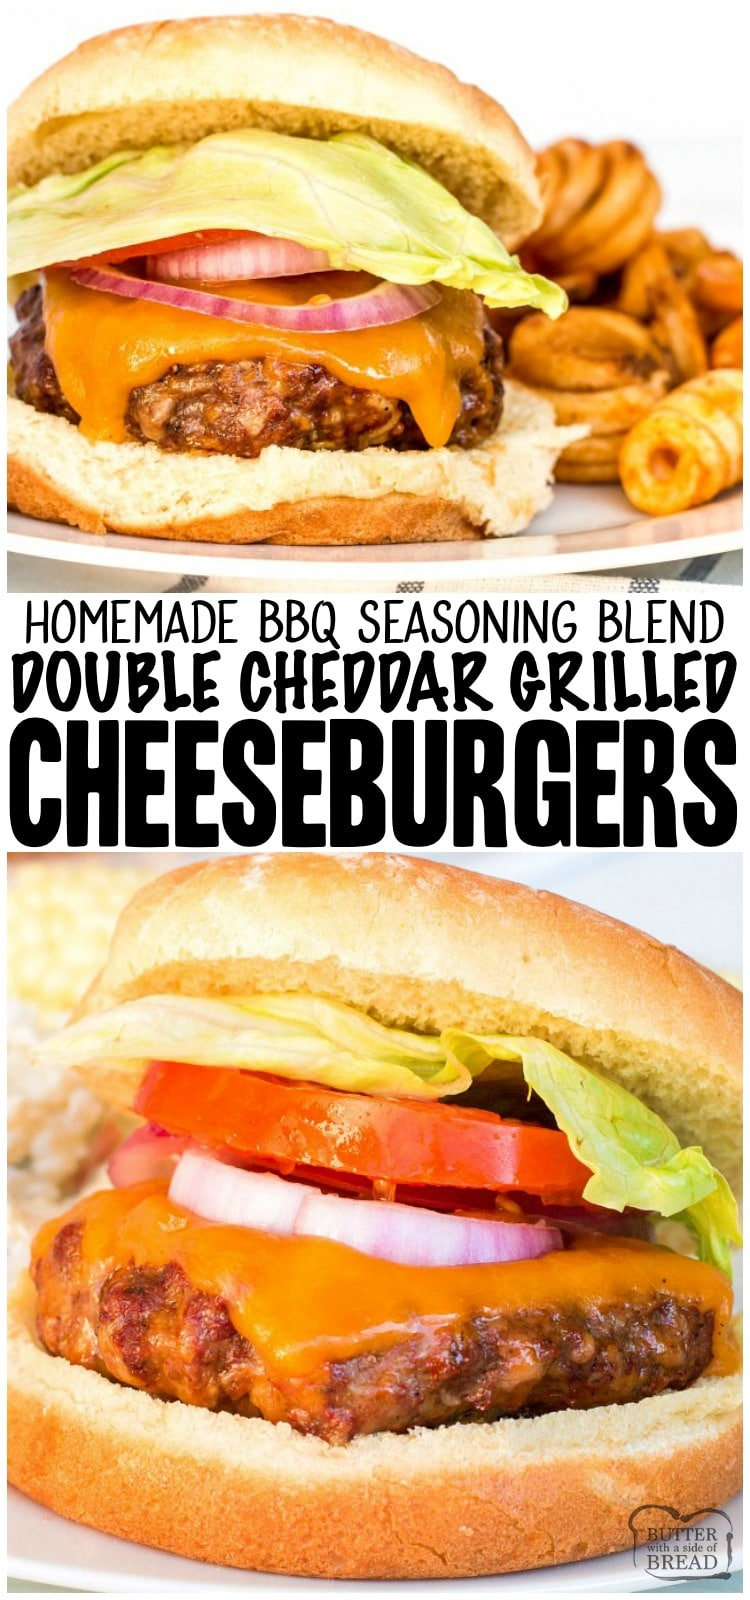 Easy Cheeseburgers are a delicious, lip smacking summertime BBQ staple at my house. With only four ingredients, this cheeseburger recipe is quick, easy and flavorful. #beef #cheese #burgers #cheeseburgers #grilling #bbq #recipe from BUTTER WITH A SIDE OF BREAD